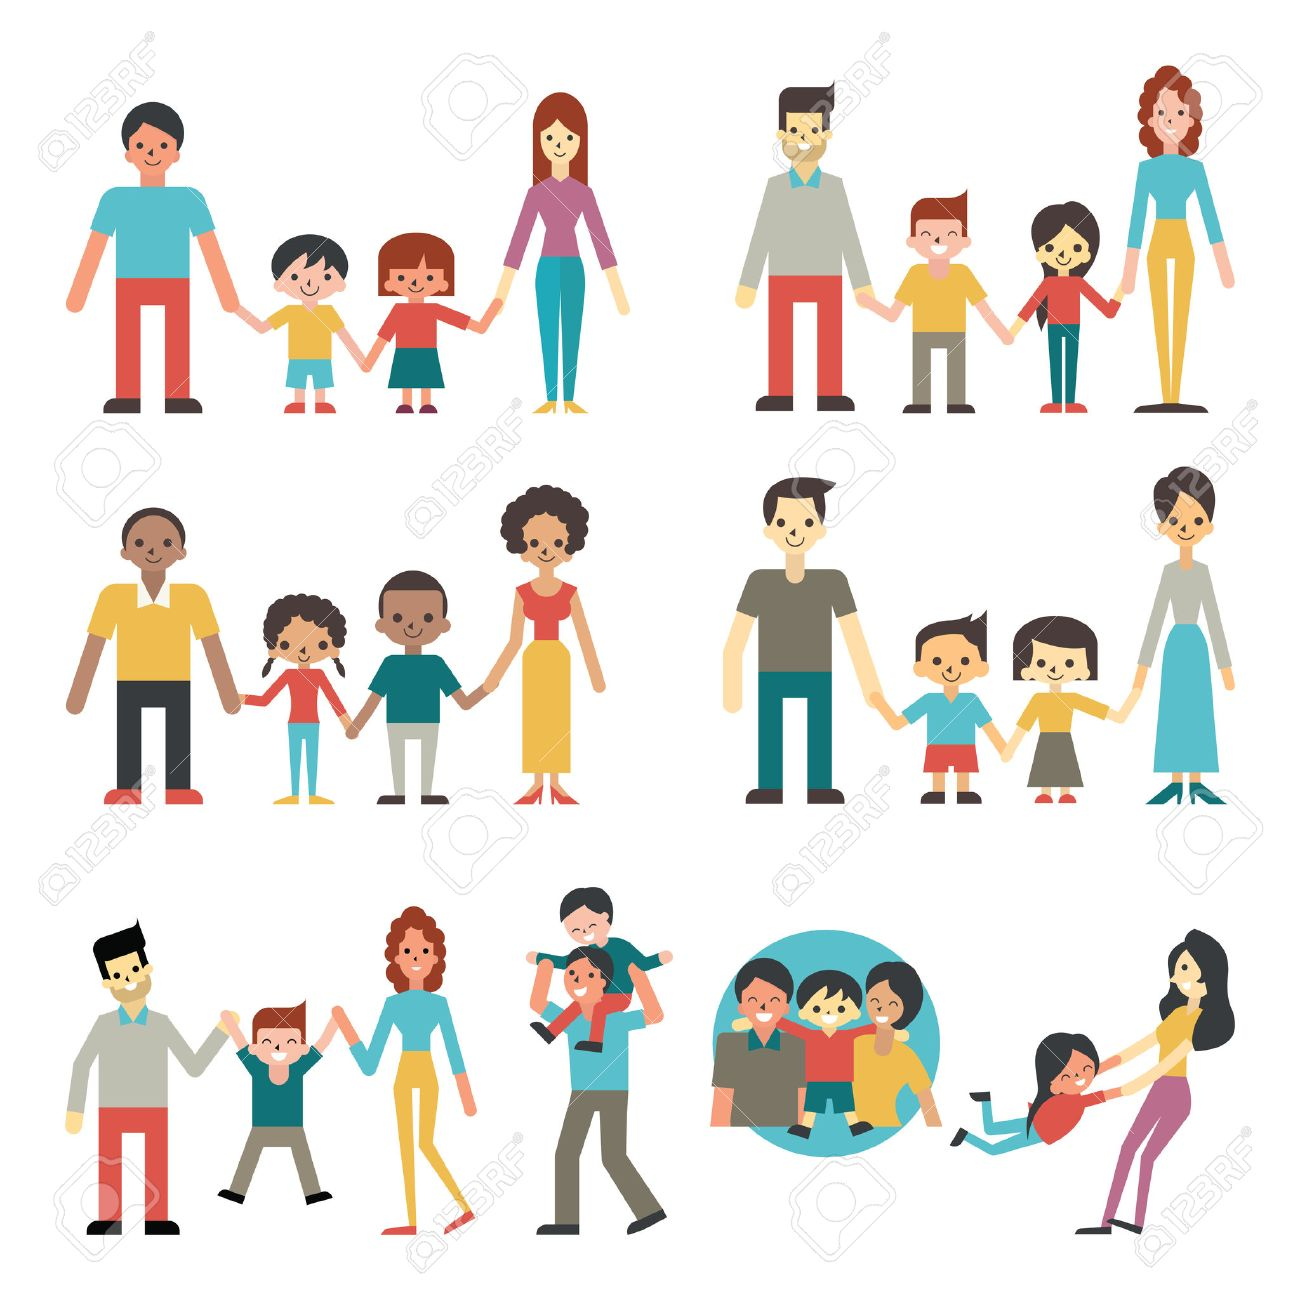 illustration character of people in happy family concept father rh 123rf com Black Family African American Clip Art Family